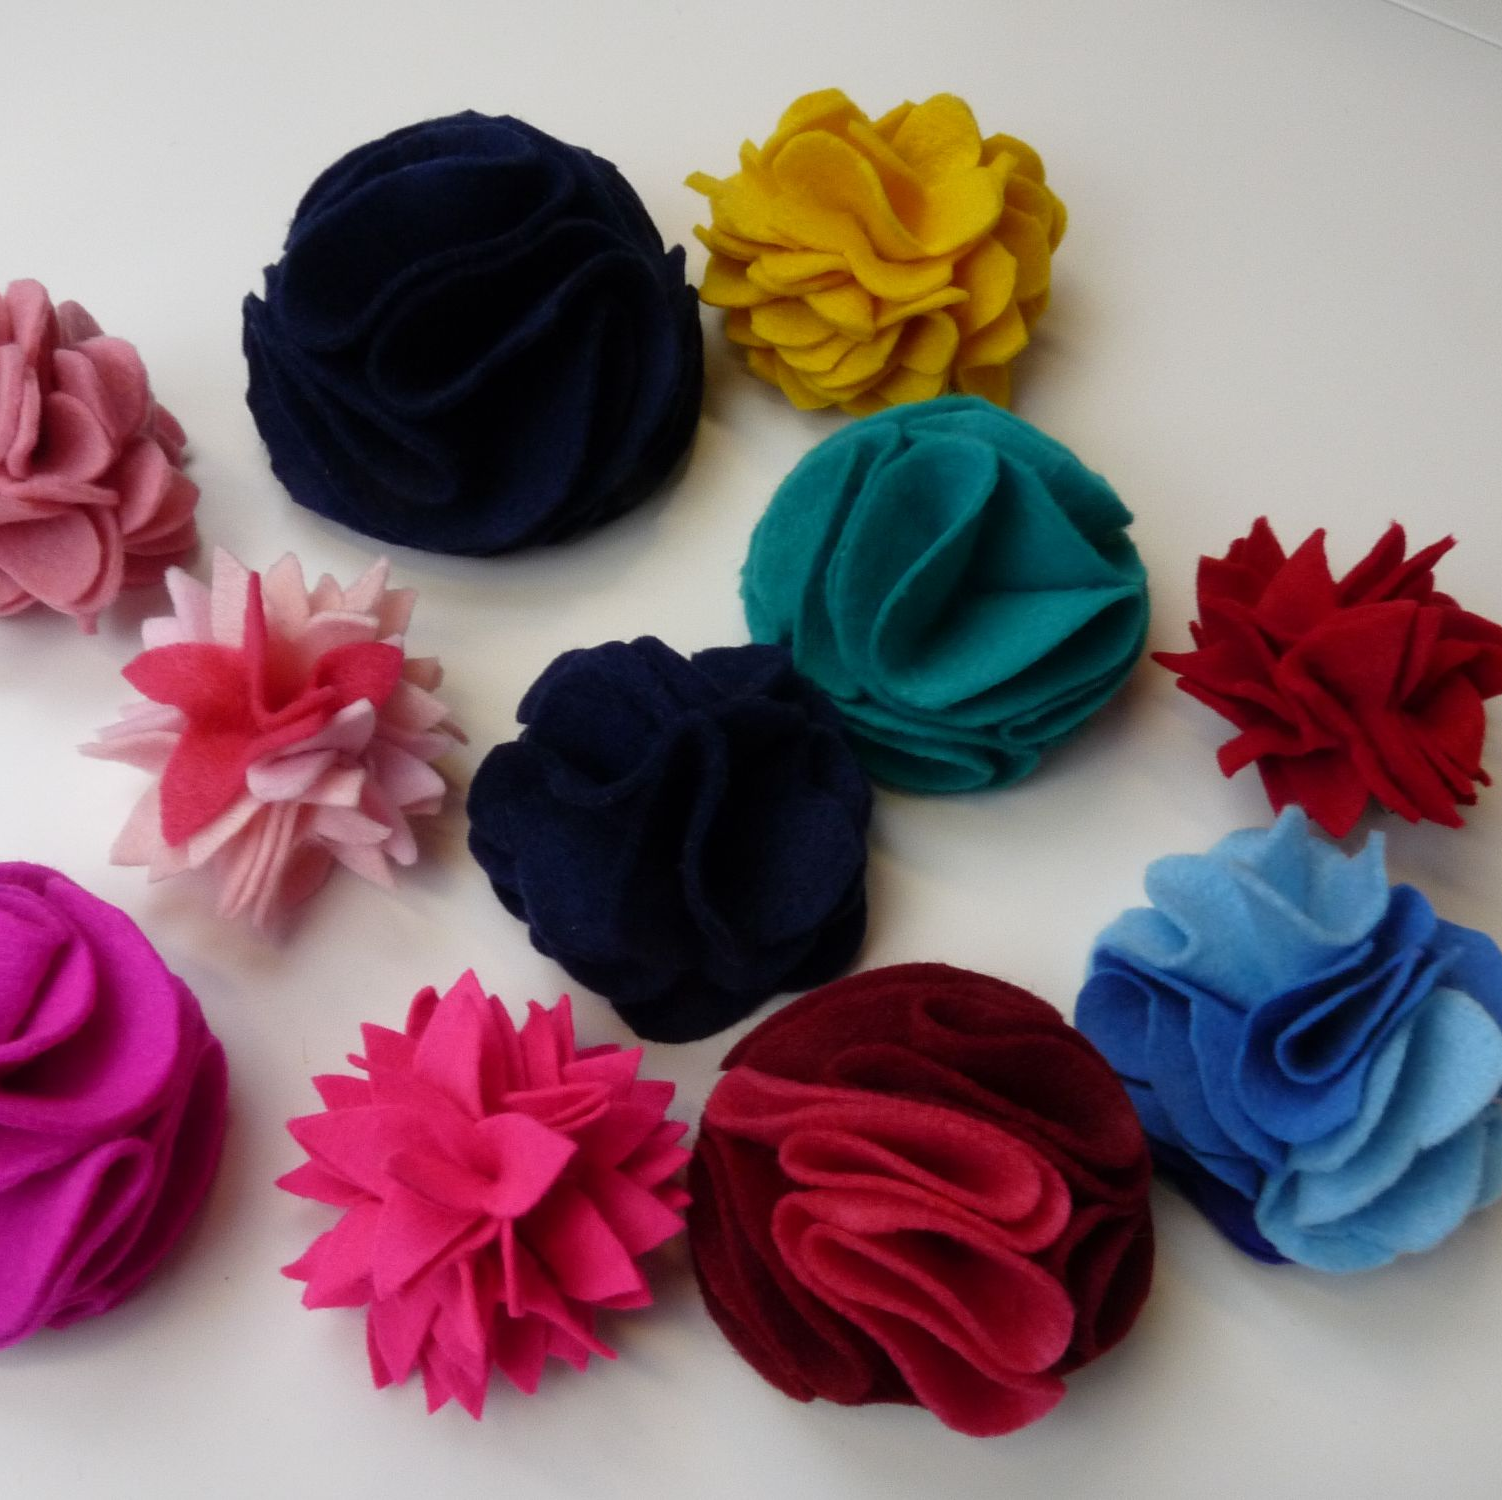 Felt flower hen party activity Brighton & Hove. Sew In Brighton